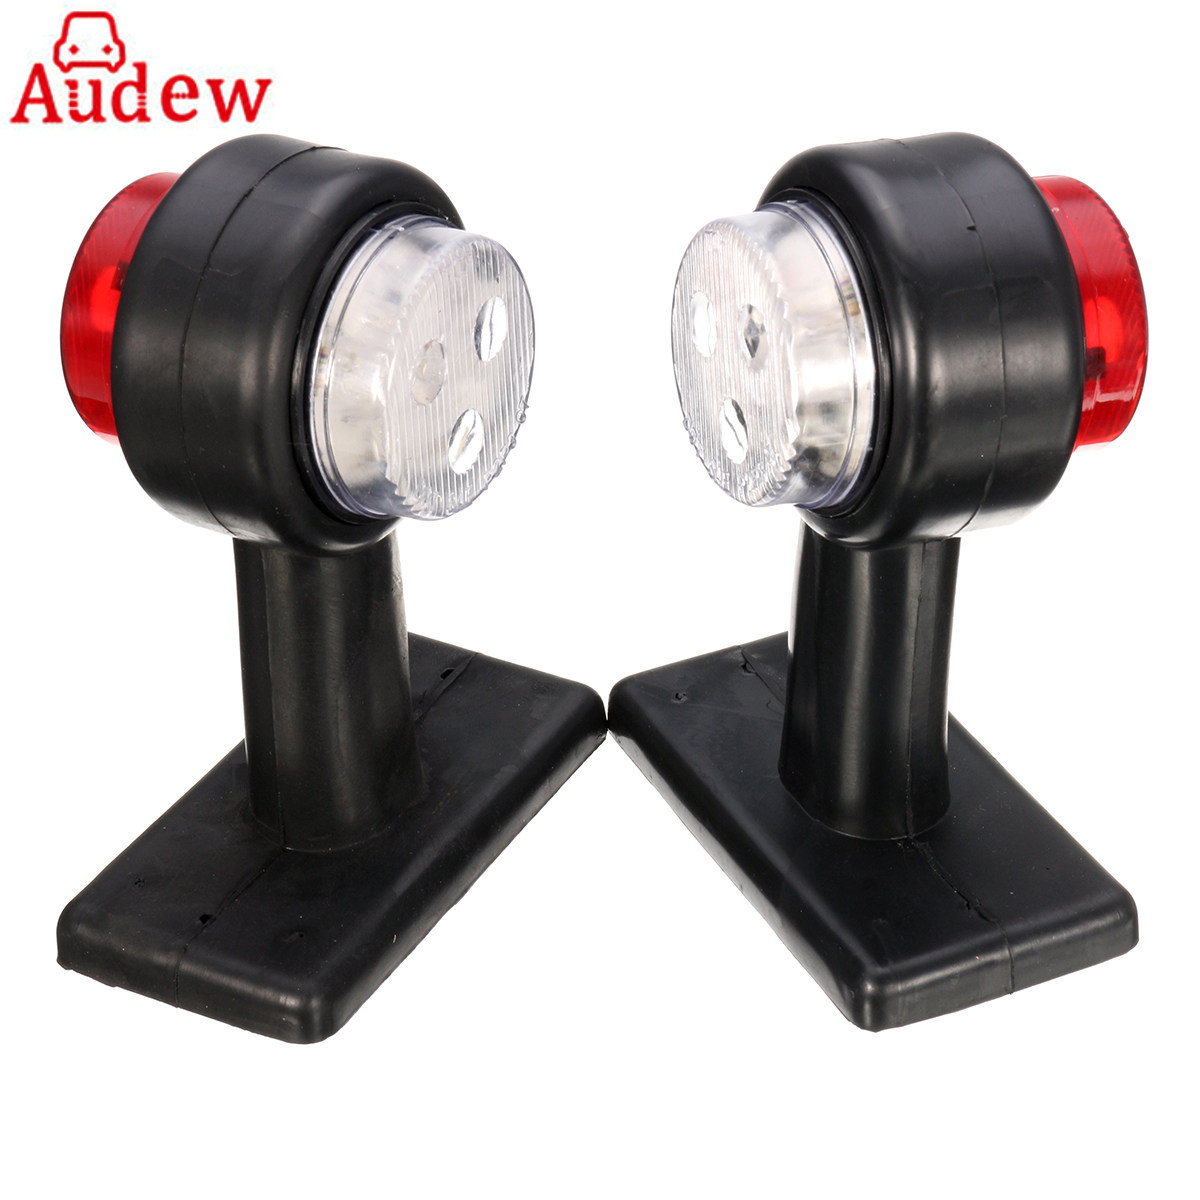 1Pair Red& White Truck Trailer Caravan Turn Light LED Double Side Marker Clearance Light Lamp 12V/24V cyan soil bay truck trailer side fender marker clearance light chrome bezel 3 led dc 10 30v red